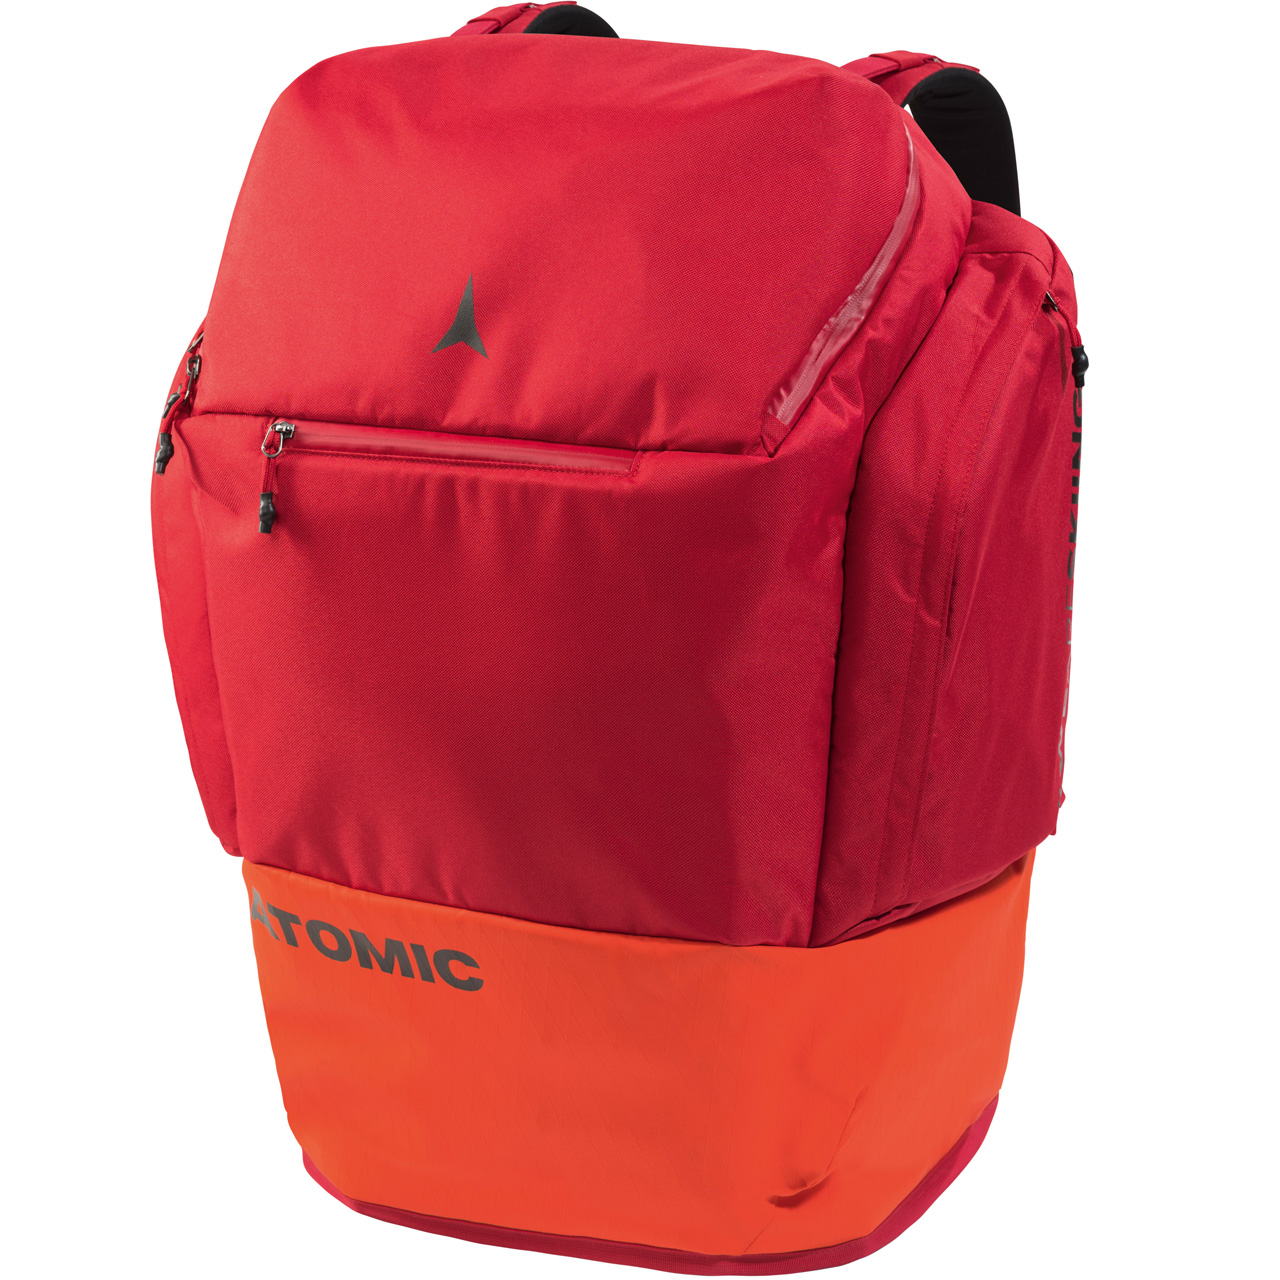 0b2abd1f9c Buy ski boot bags at low prices in the online ski shop